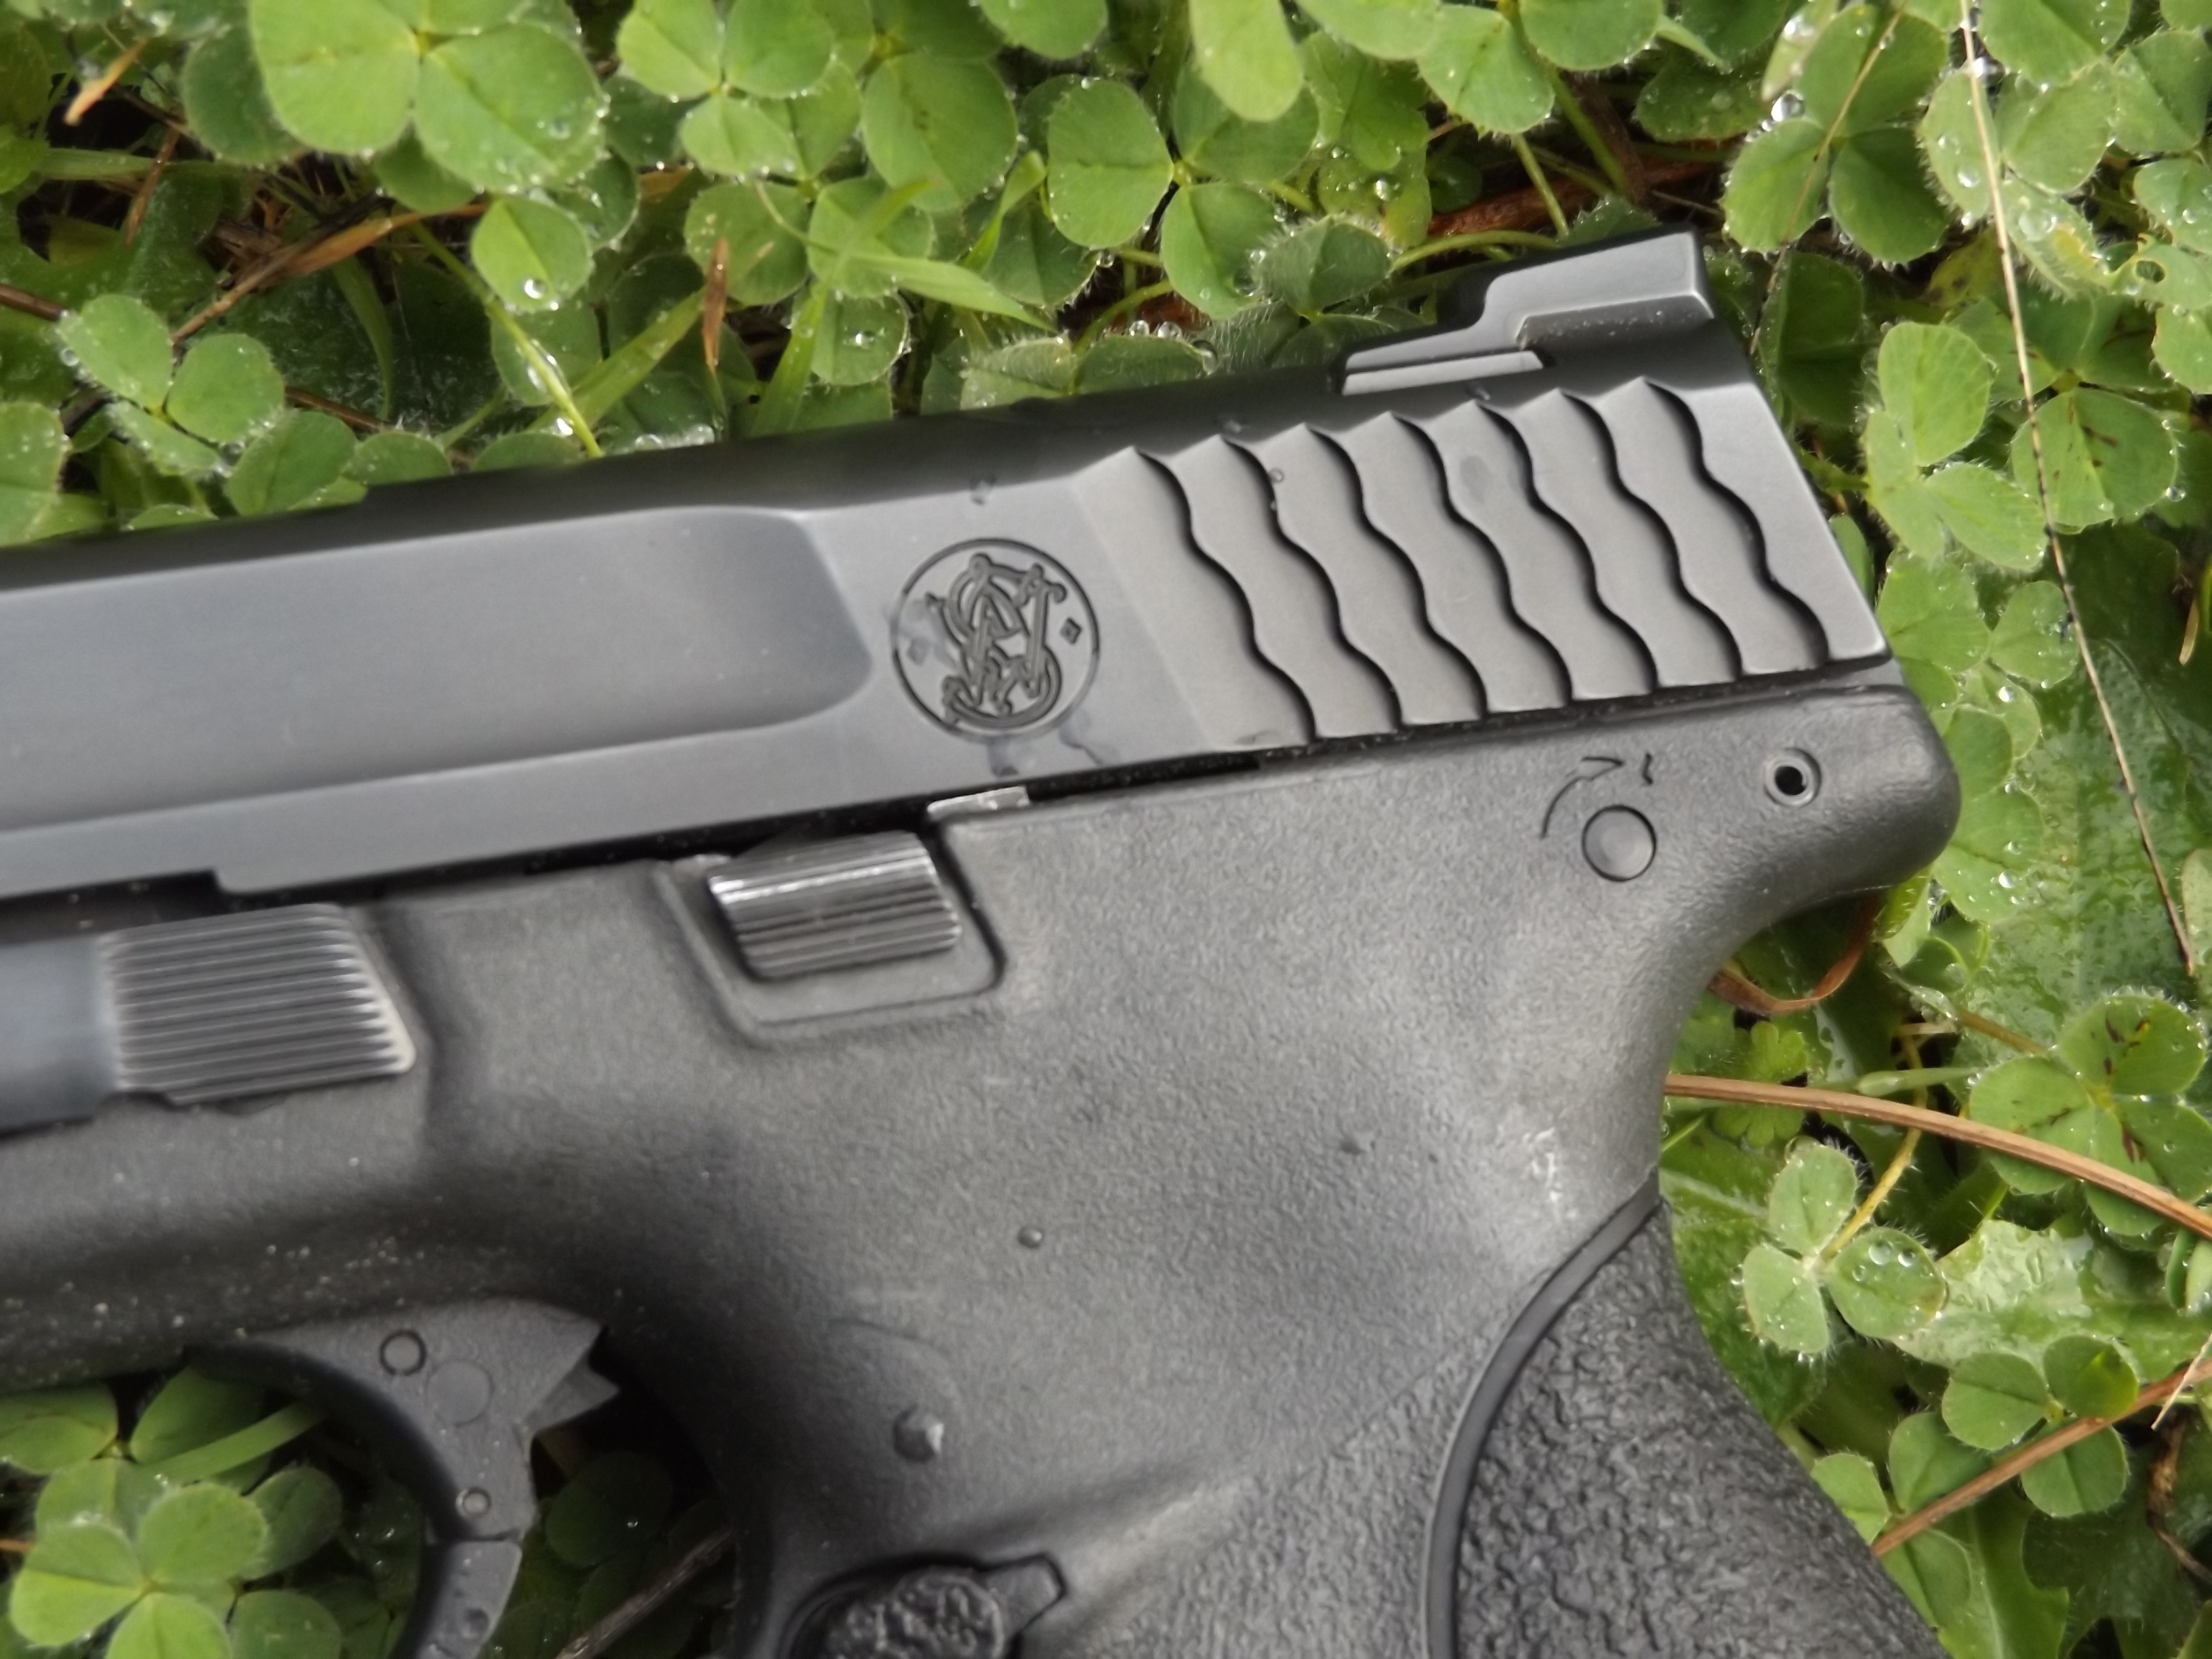 S&W M&P 9mm Compact Review by Pat Cascio, groups under 3-inches